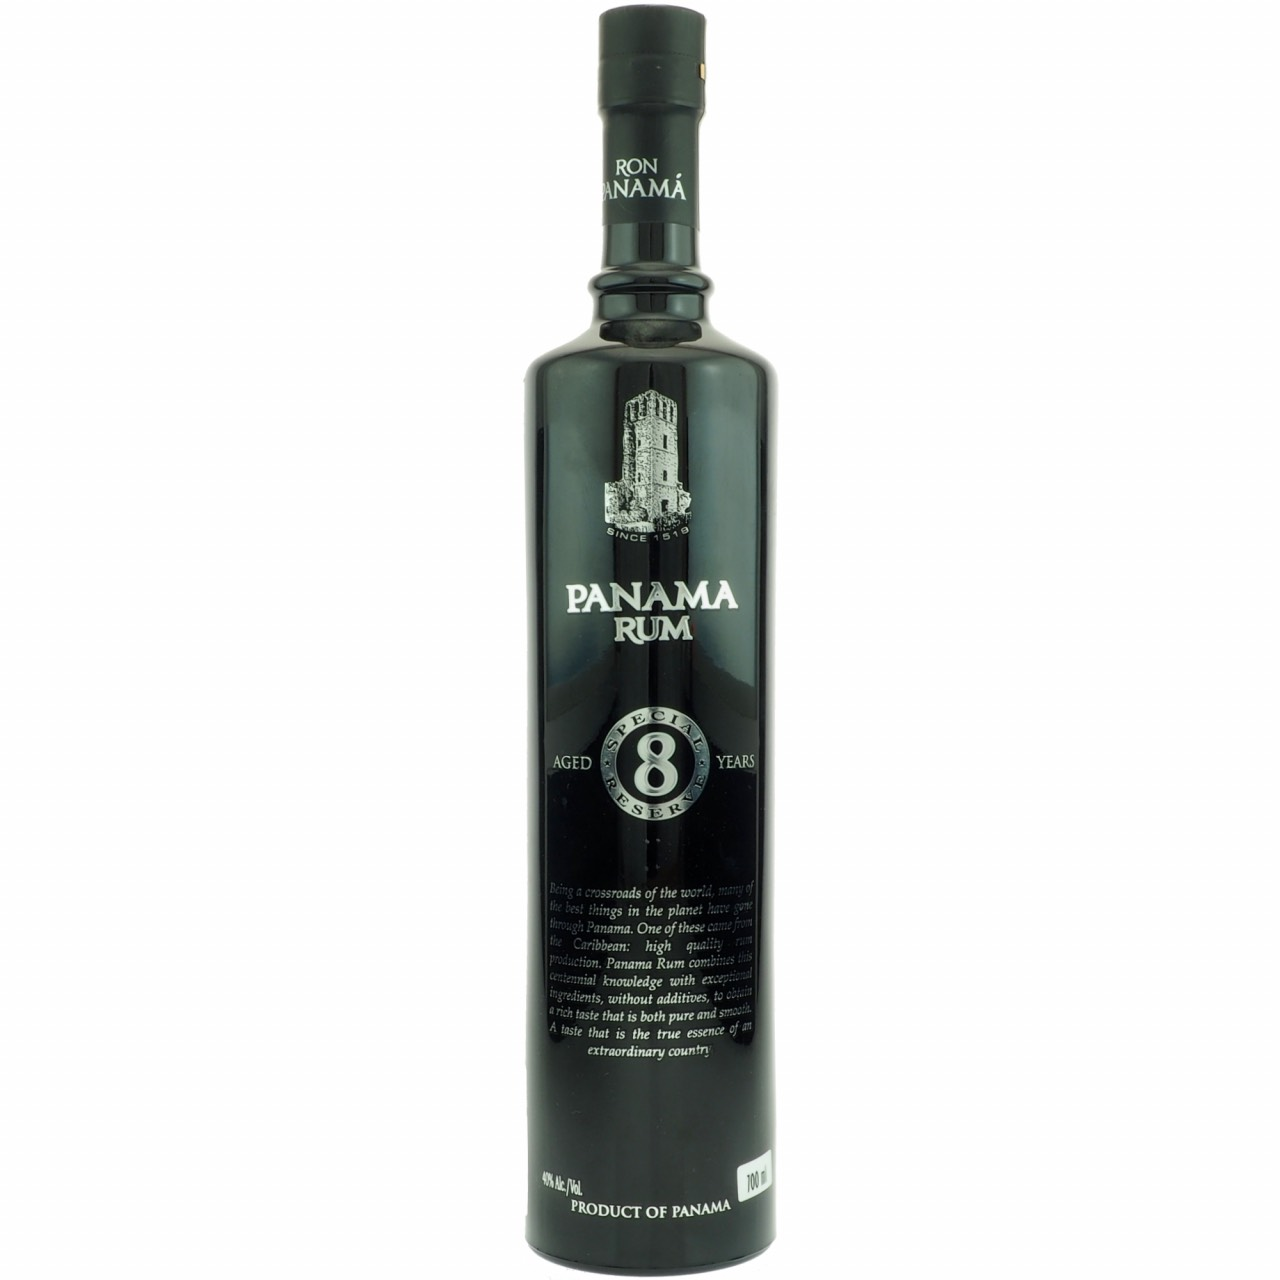 Bottle image of Ron Panama Special Reserve